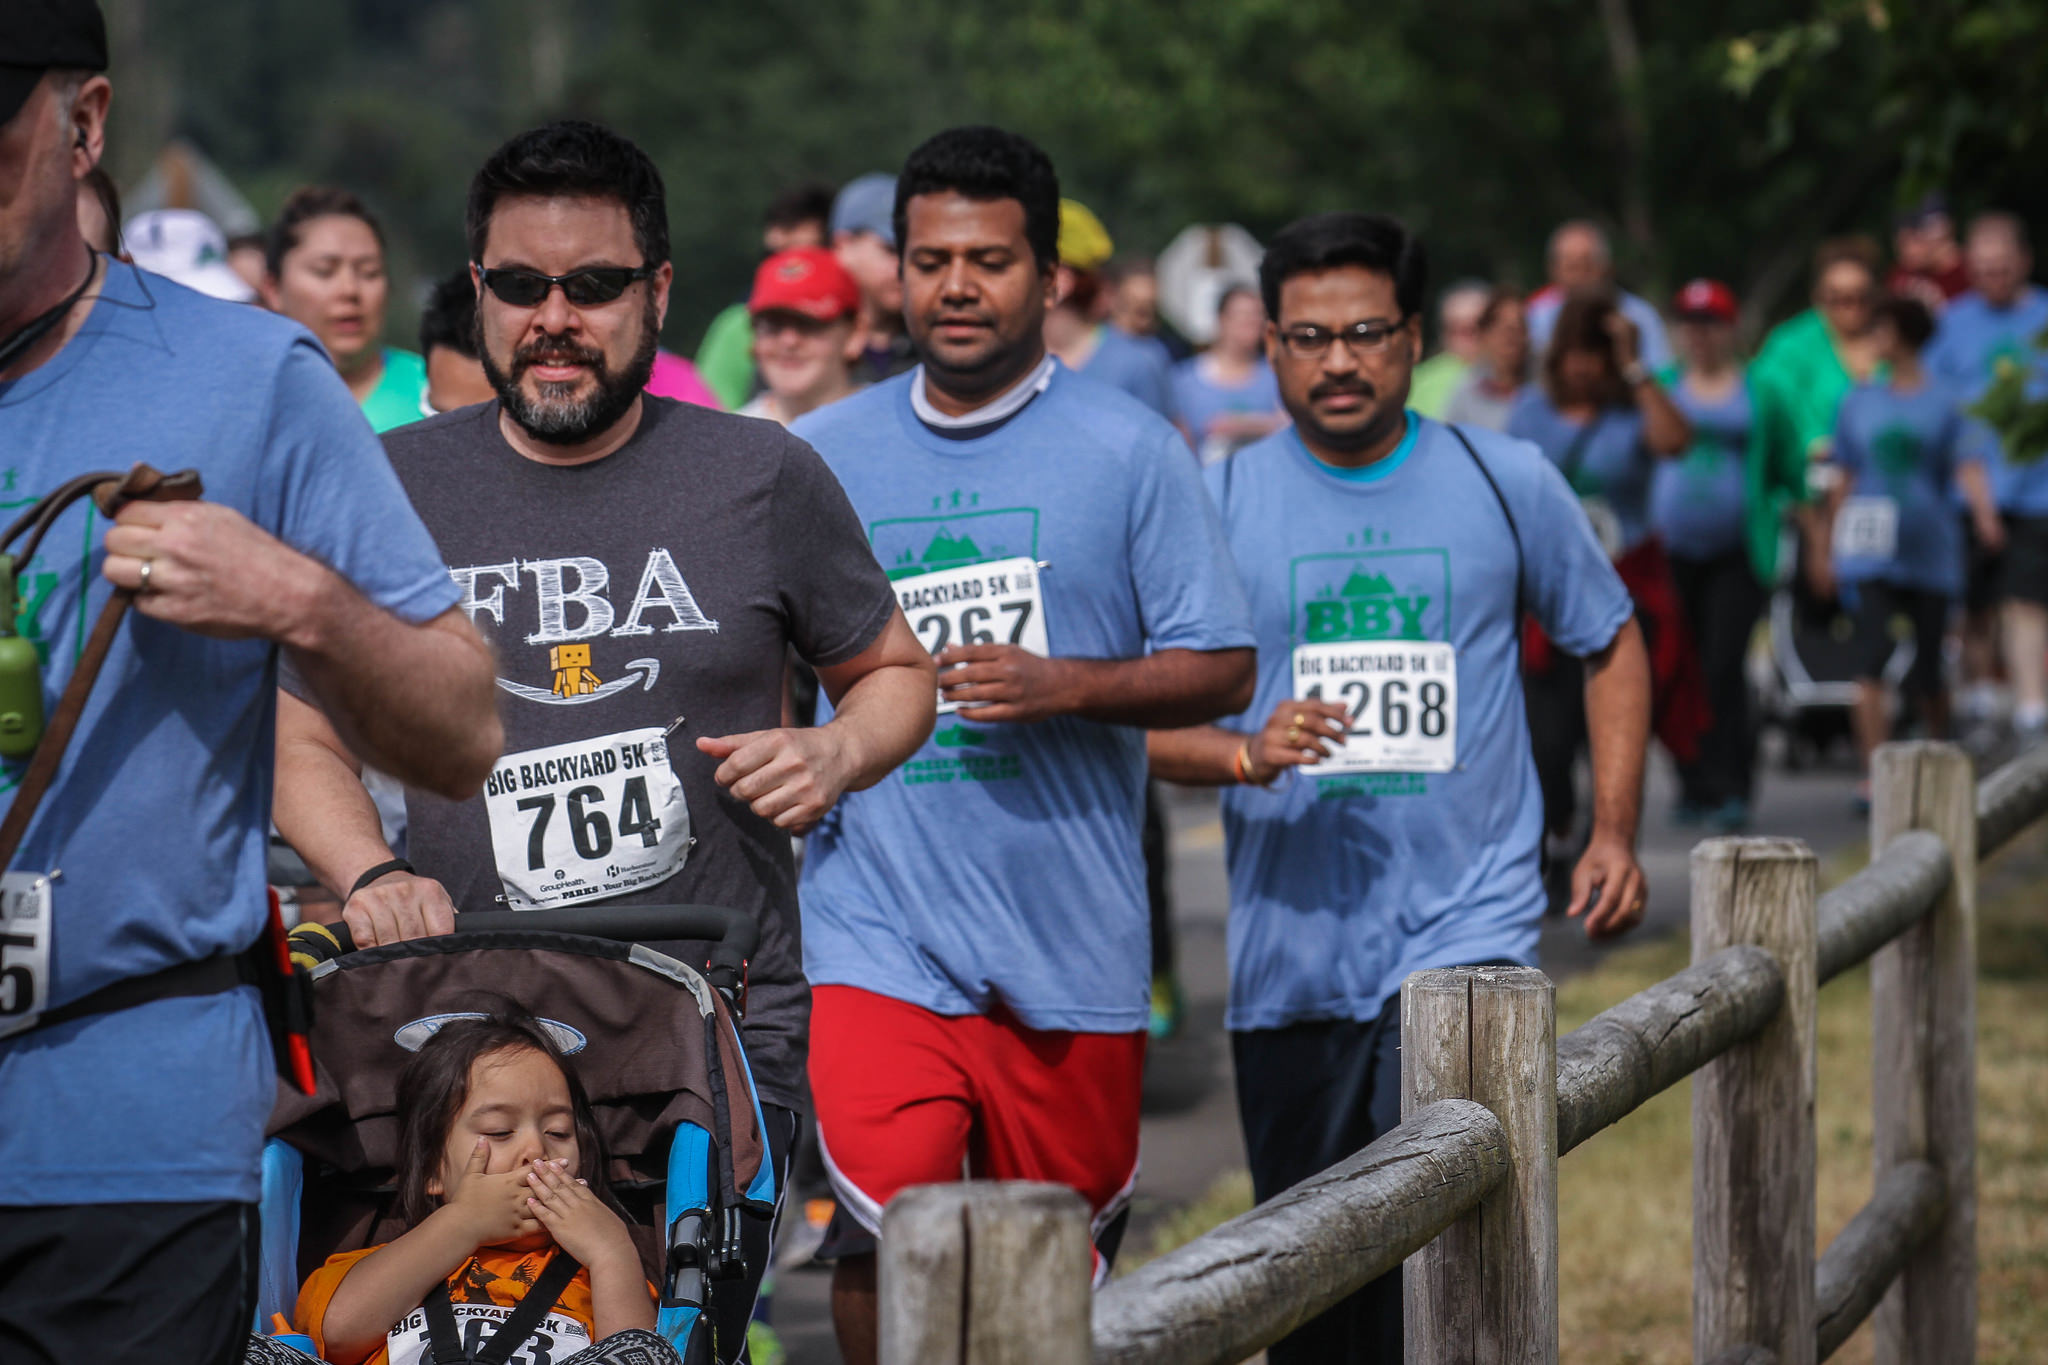 Big Backyard 5K 2015 big backyard 5k – king county parks plog